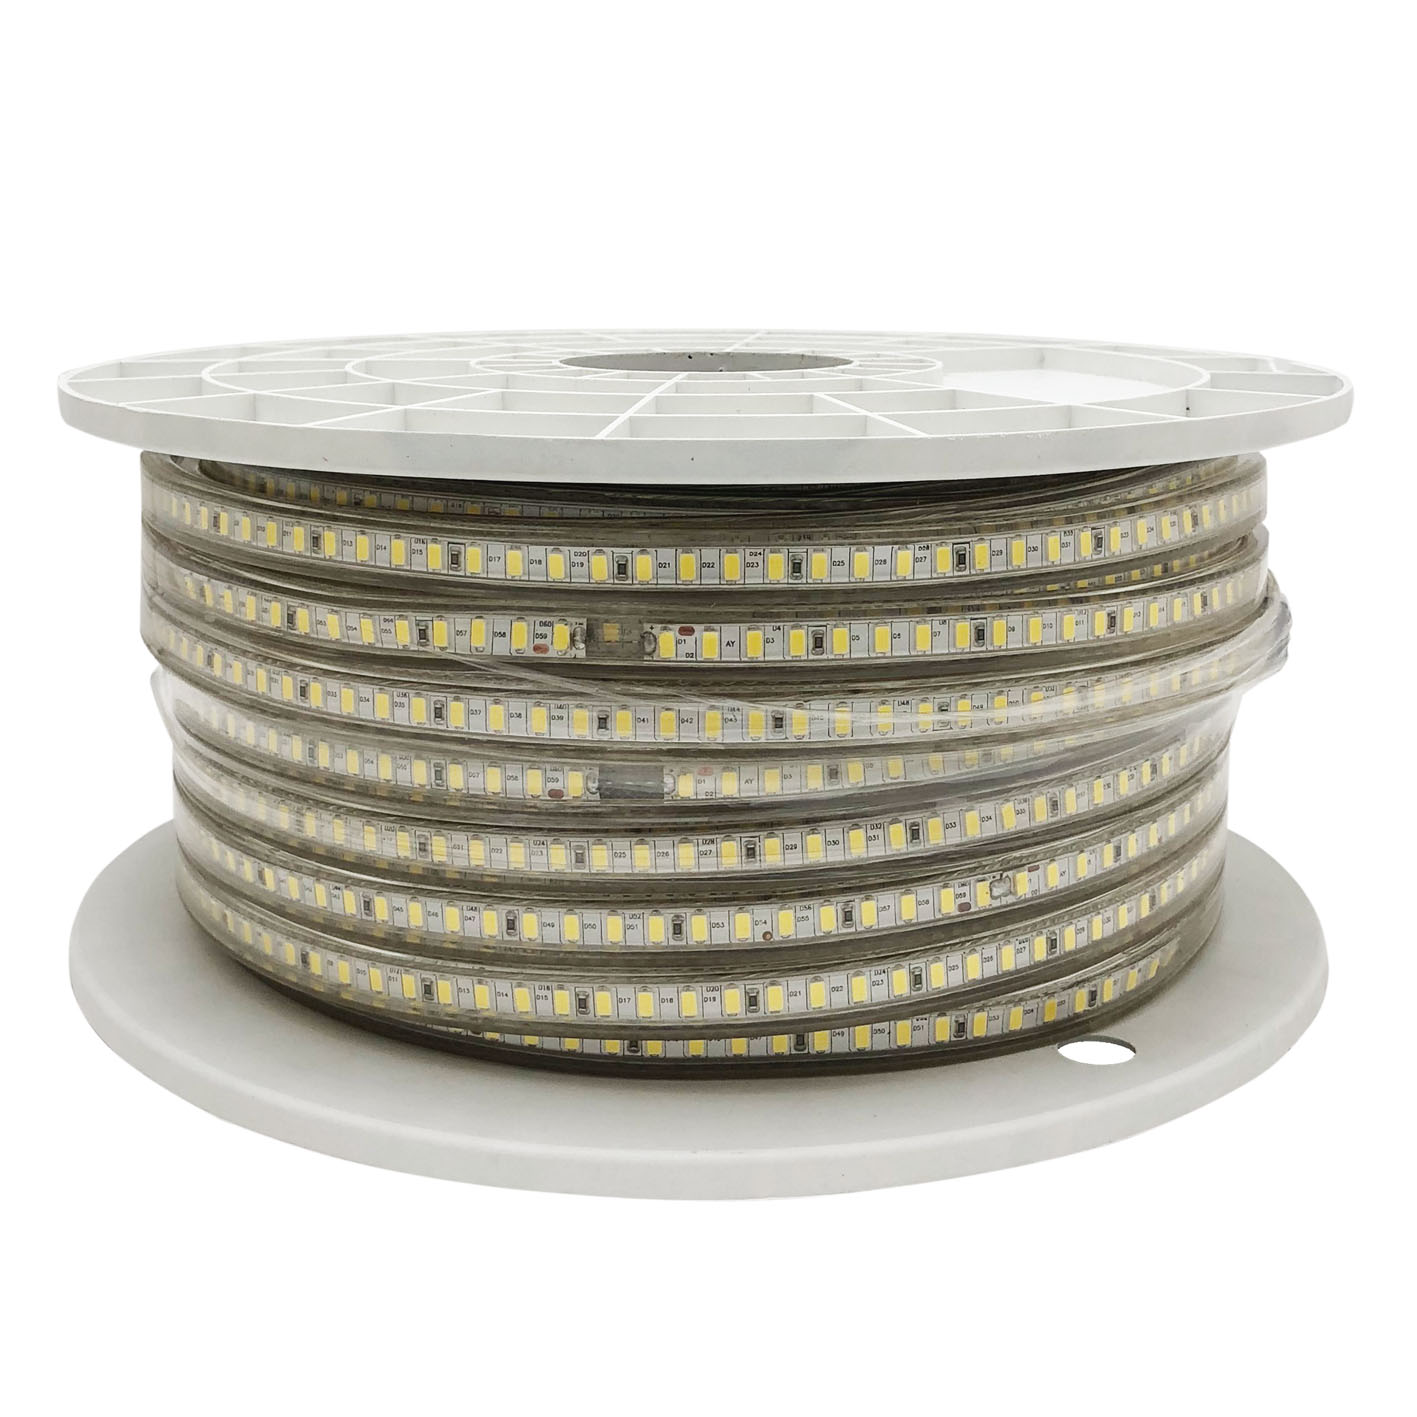 50m Led Strip 220V smd 5730 strip Coil 6000 leds 12w/m